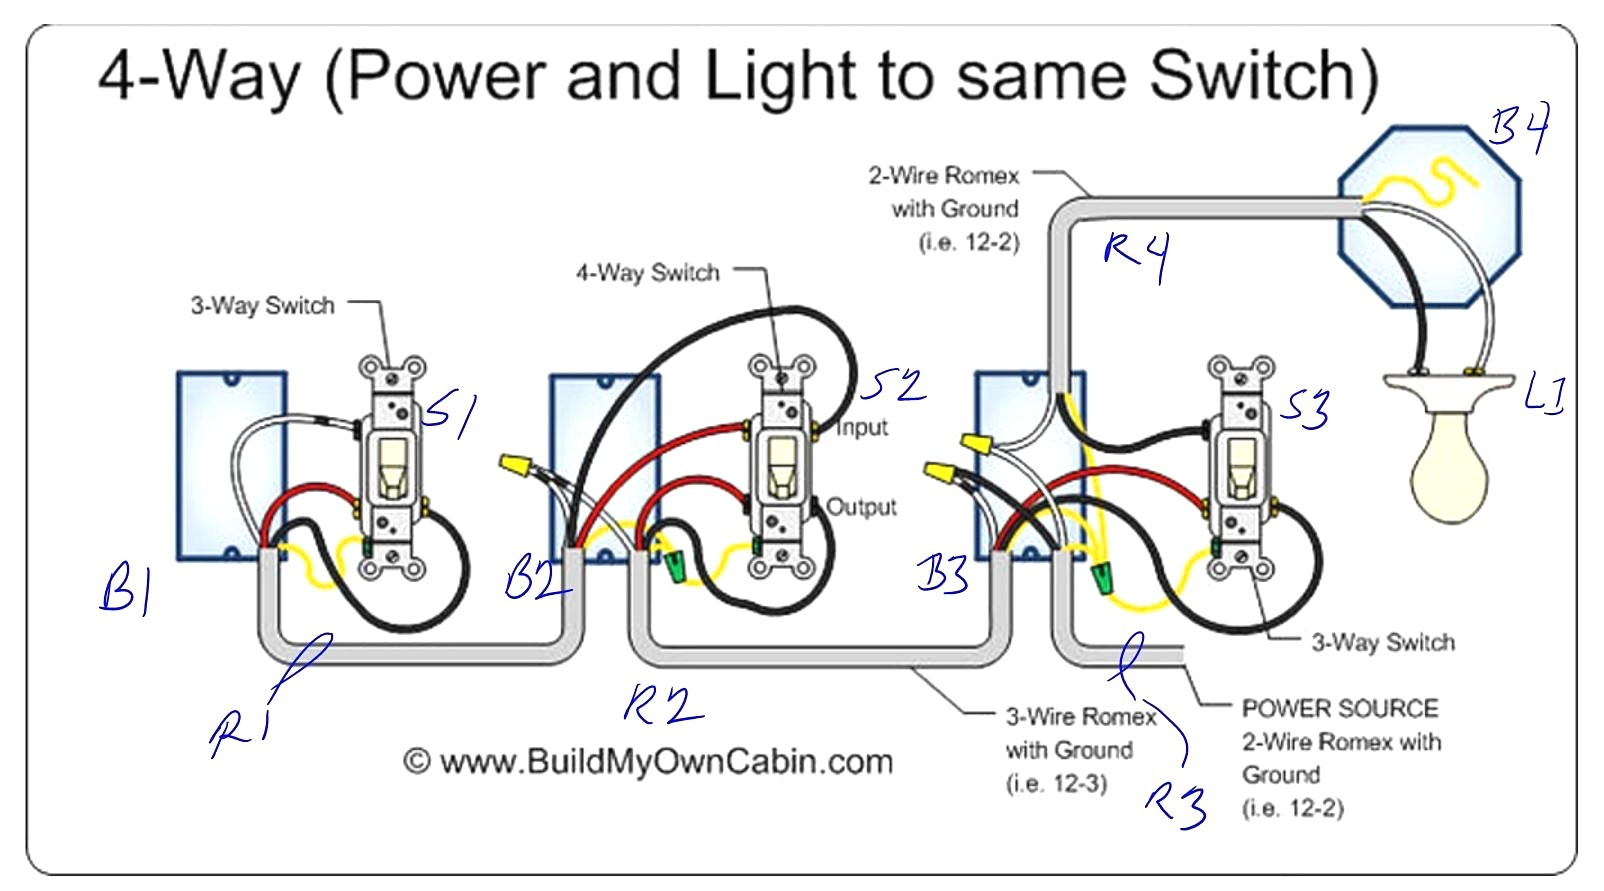 Tremendous Wrg 4272 How To Wire A 4 Way Light Switch Diagram Wiring Cloud Icalpermsplehendilmohammedshrineorg